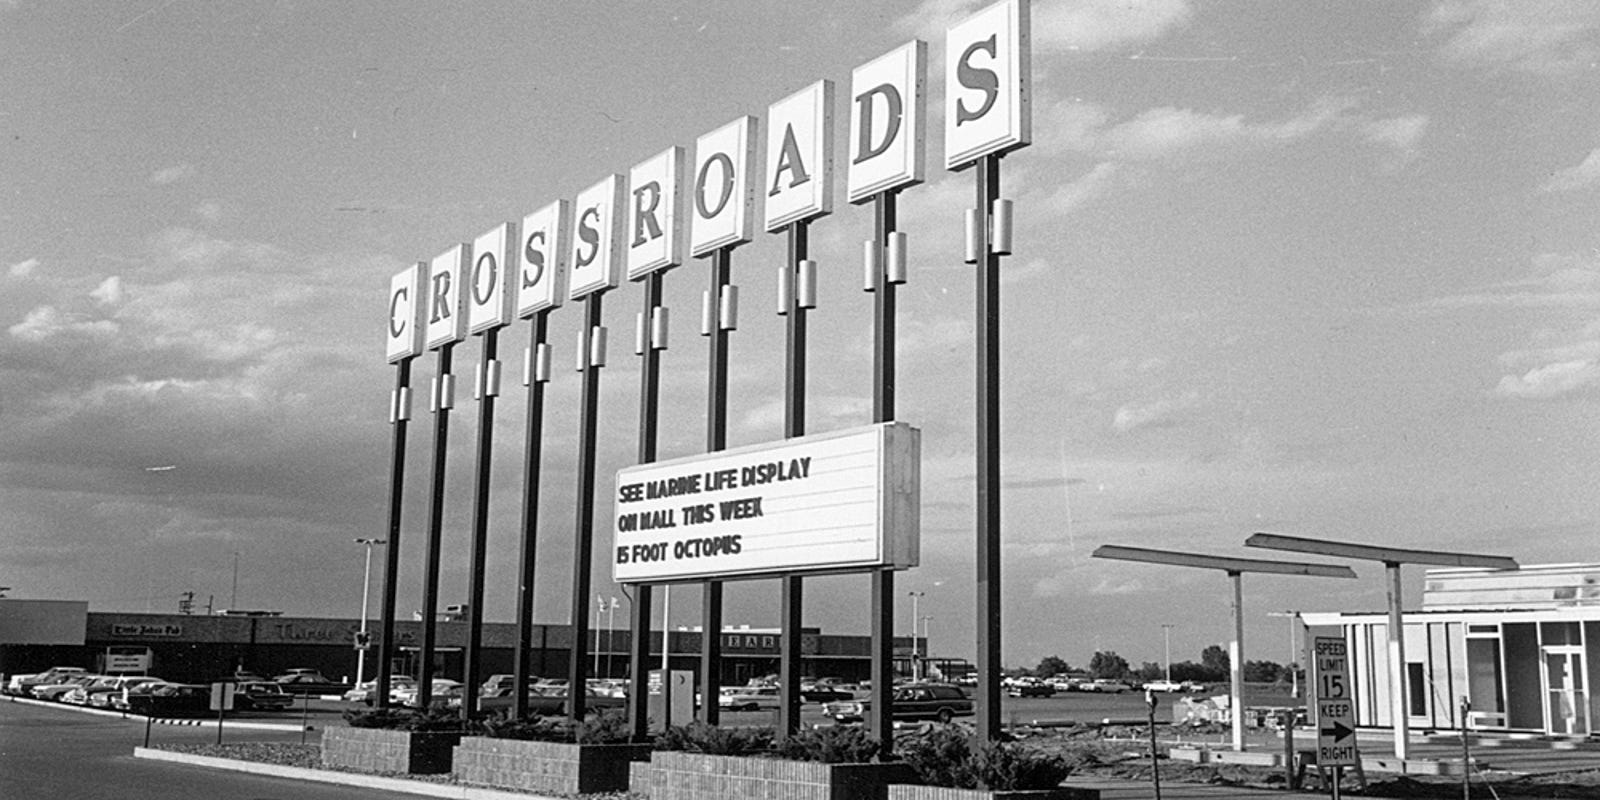 As Crossroads turns 50, retail strategies change